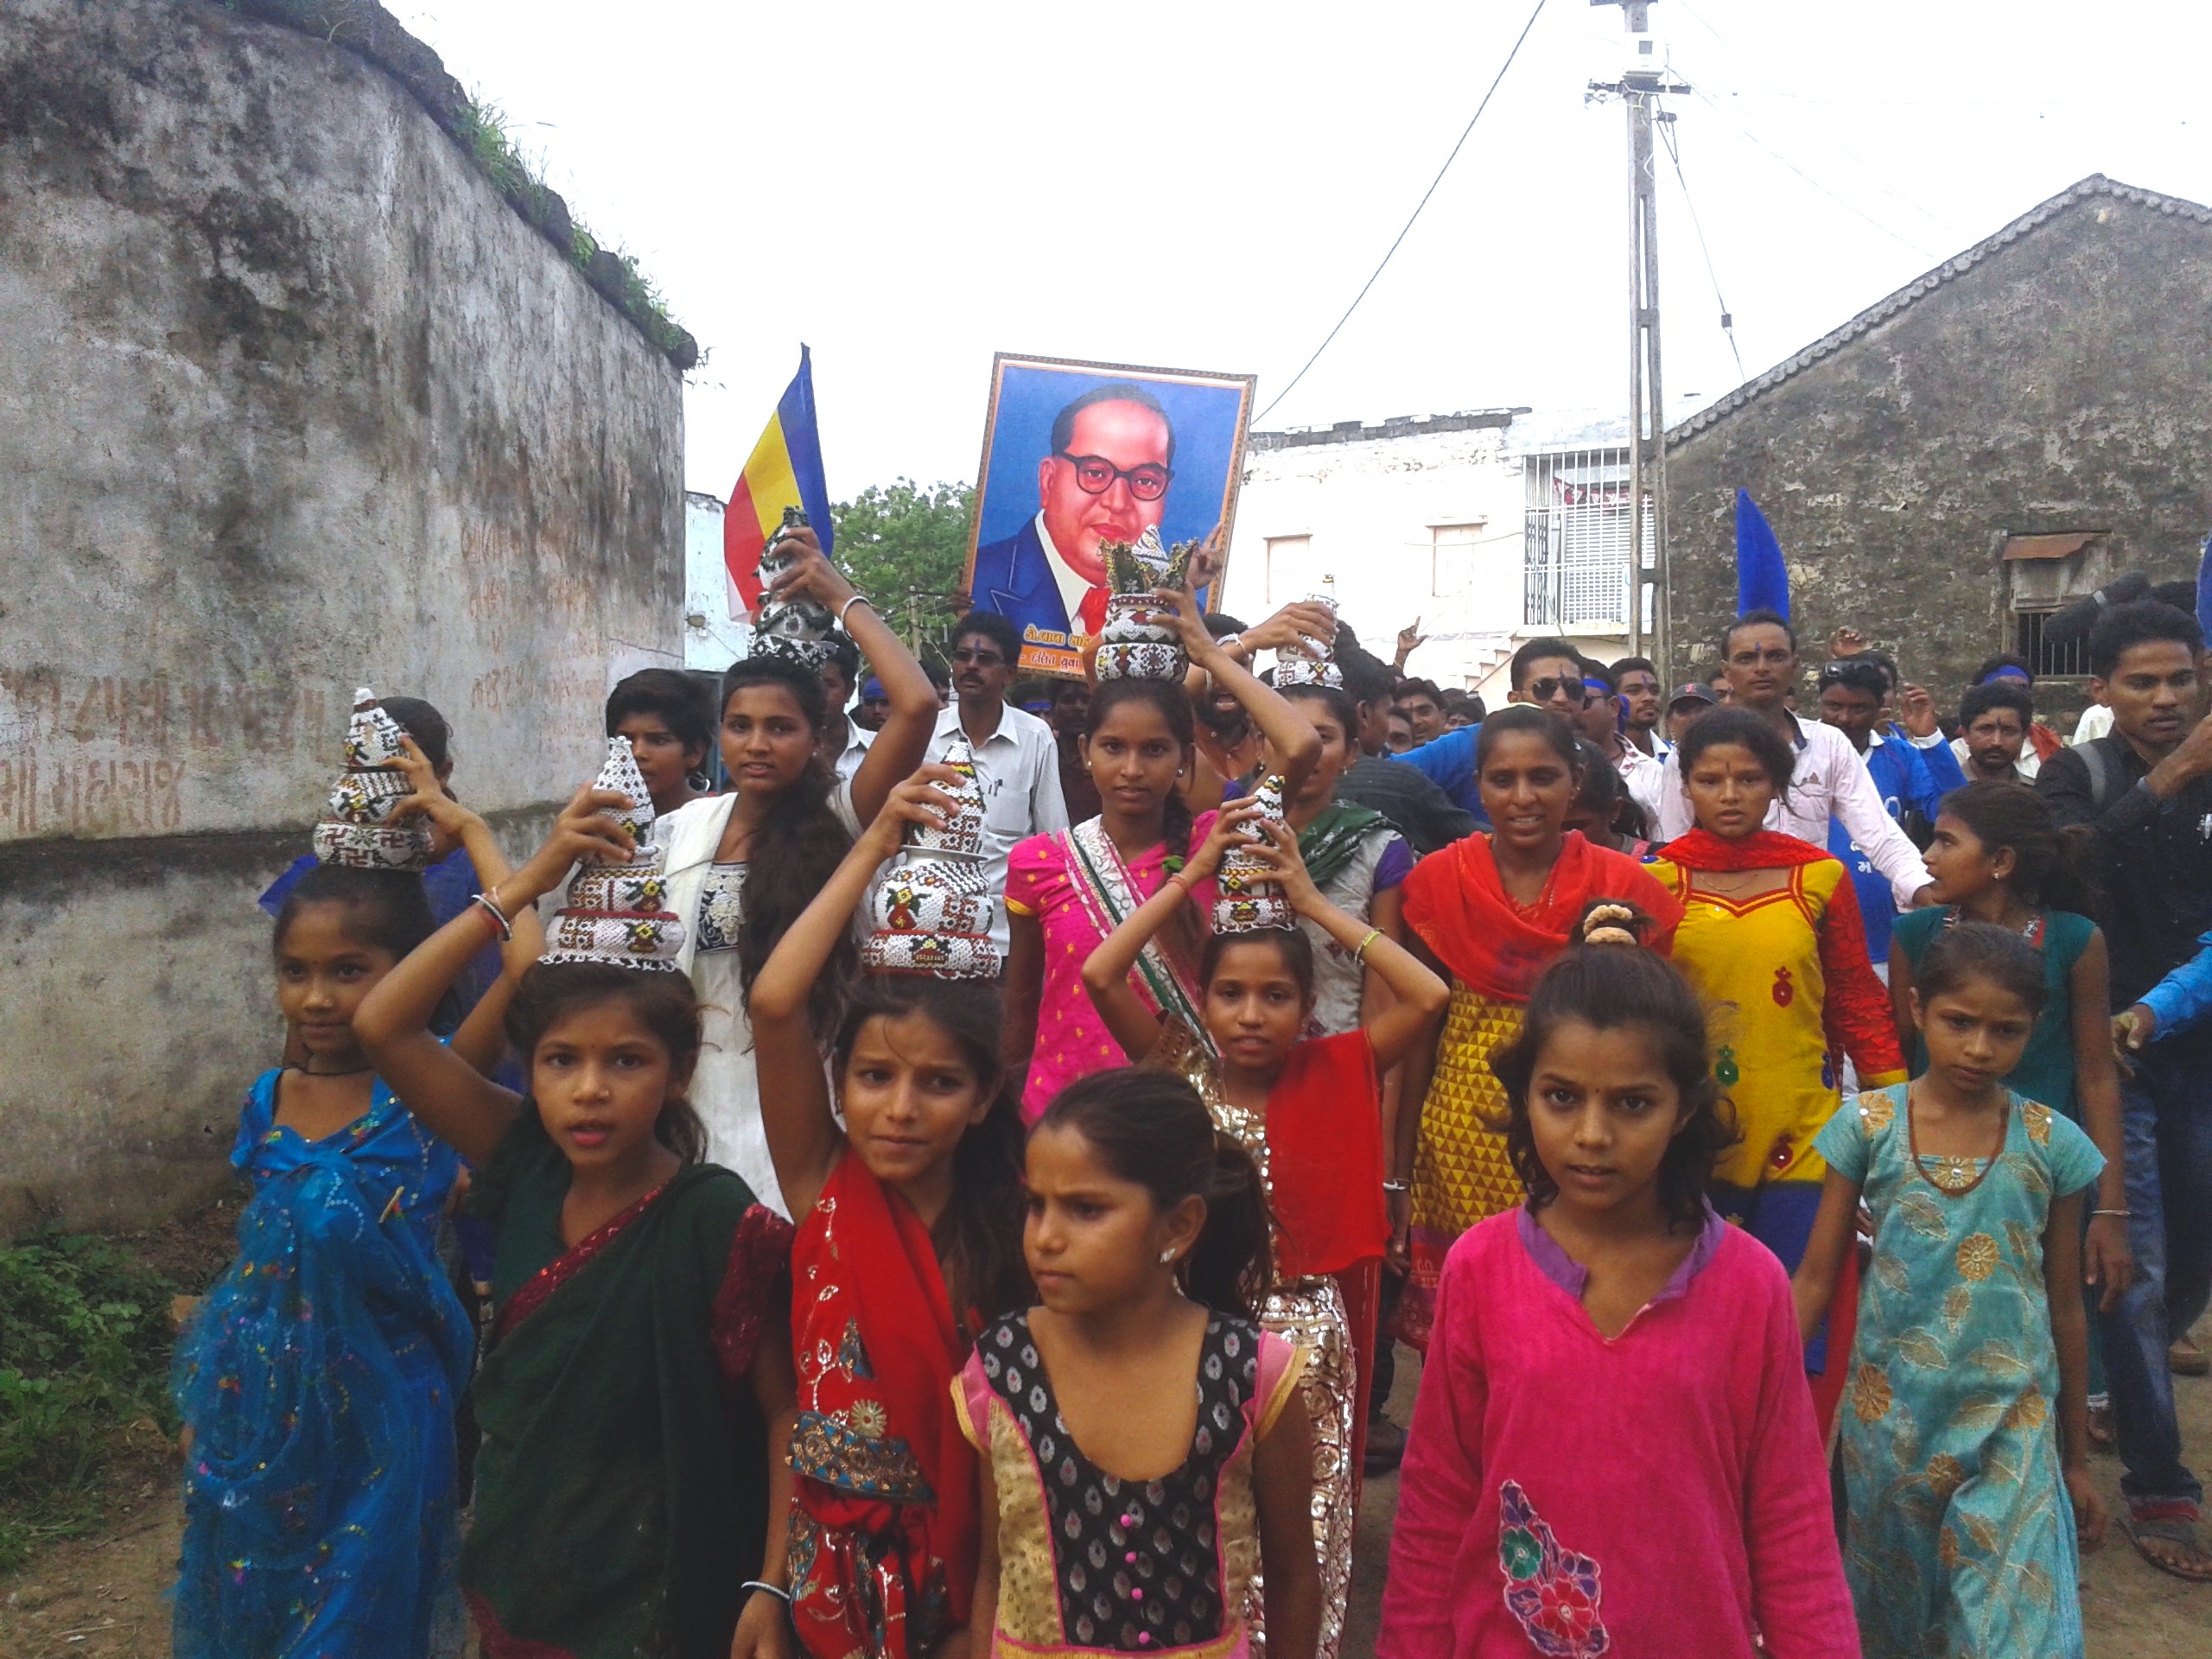 A procession welcoming Dalit protestors into the Sarvaiyas' village near Una town in August 2016. (Photo: Aarefa Johari)